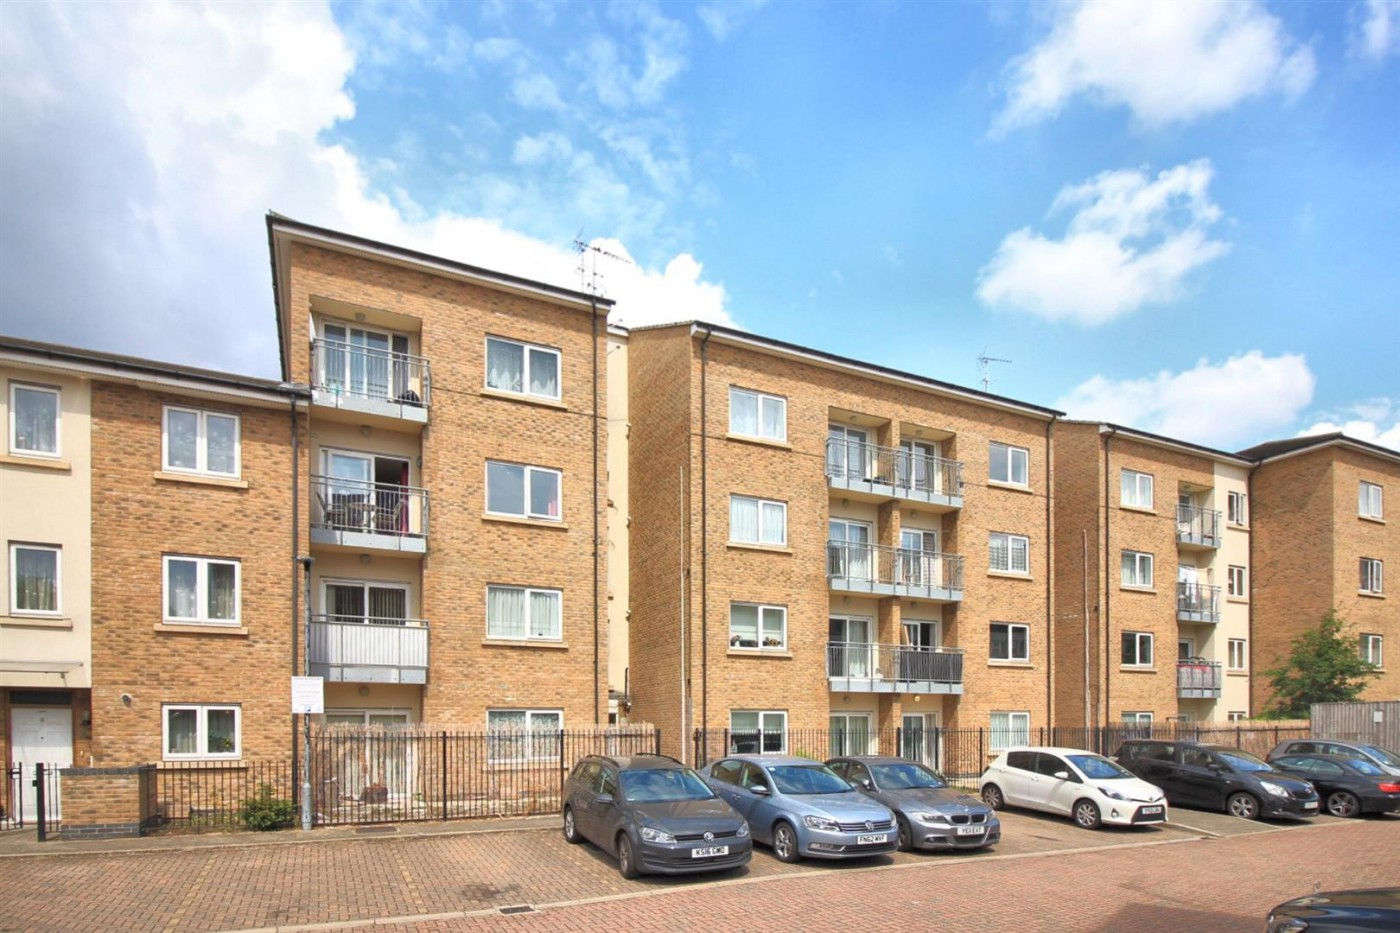 Images for Gateway Court, Convent Way, Southall, UB2